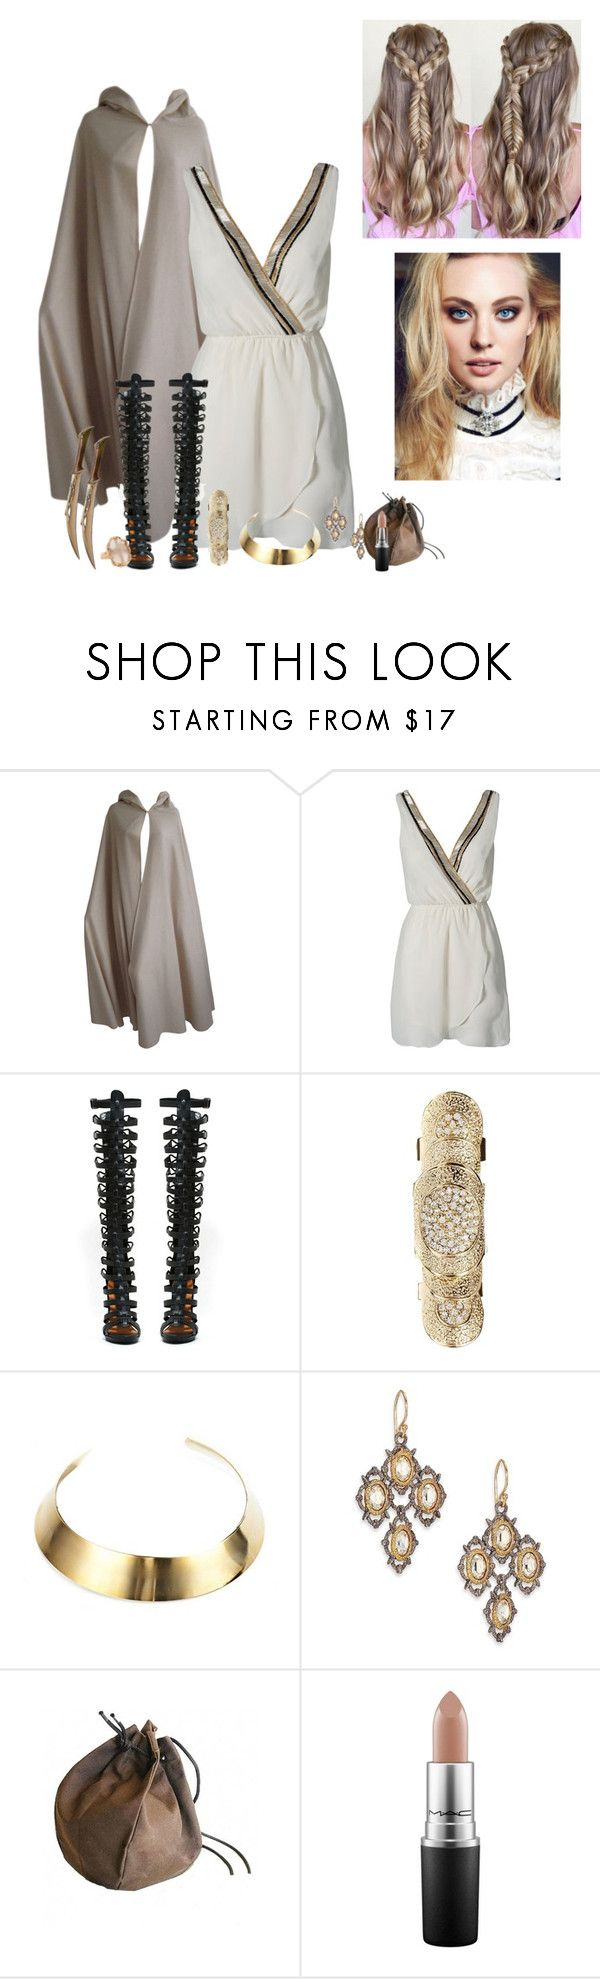 """Juliet at the end of Thor (the movie)"" by karabear3256 ❤ liked on Polyvore featuring Halston, TFNC, Shoe Cult, Love Rocks, DANNIJO, Alexis Bittar, MAC Cosmetics, Lucifer Vir Honestus and WOLL"